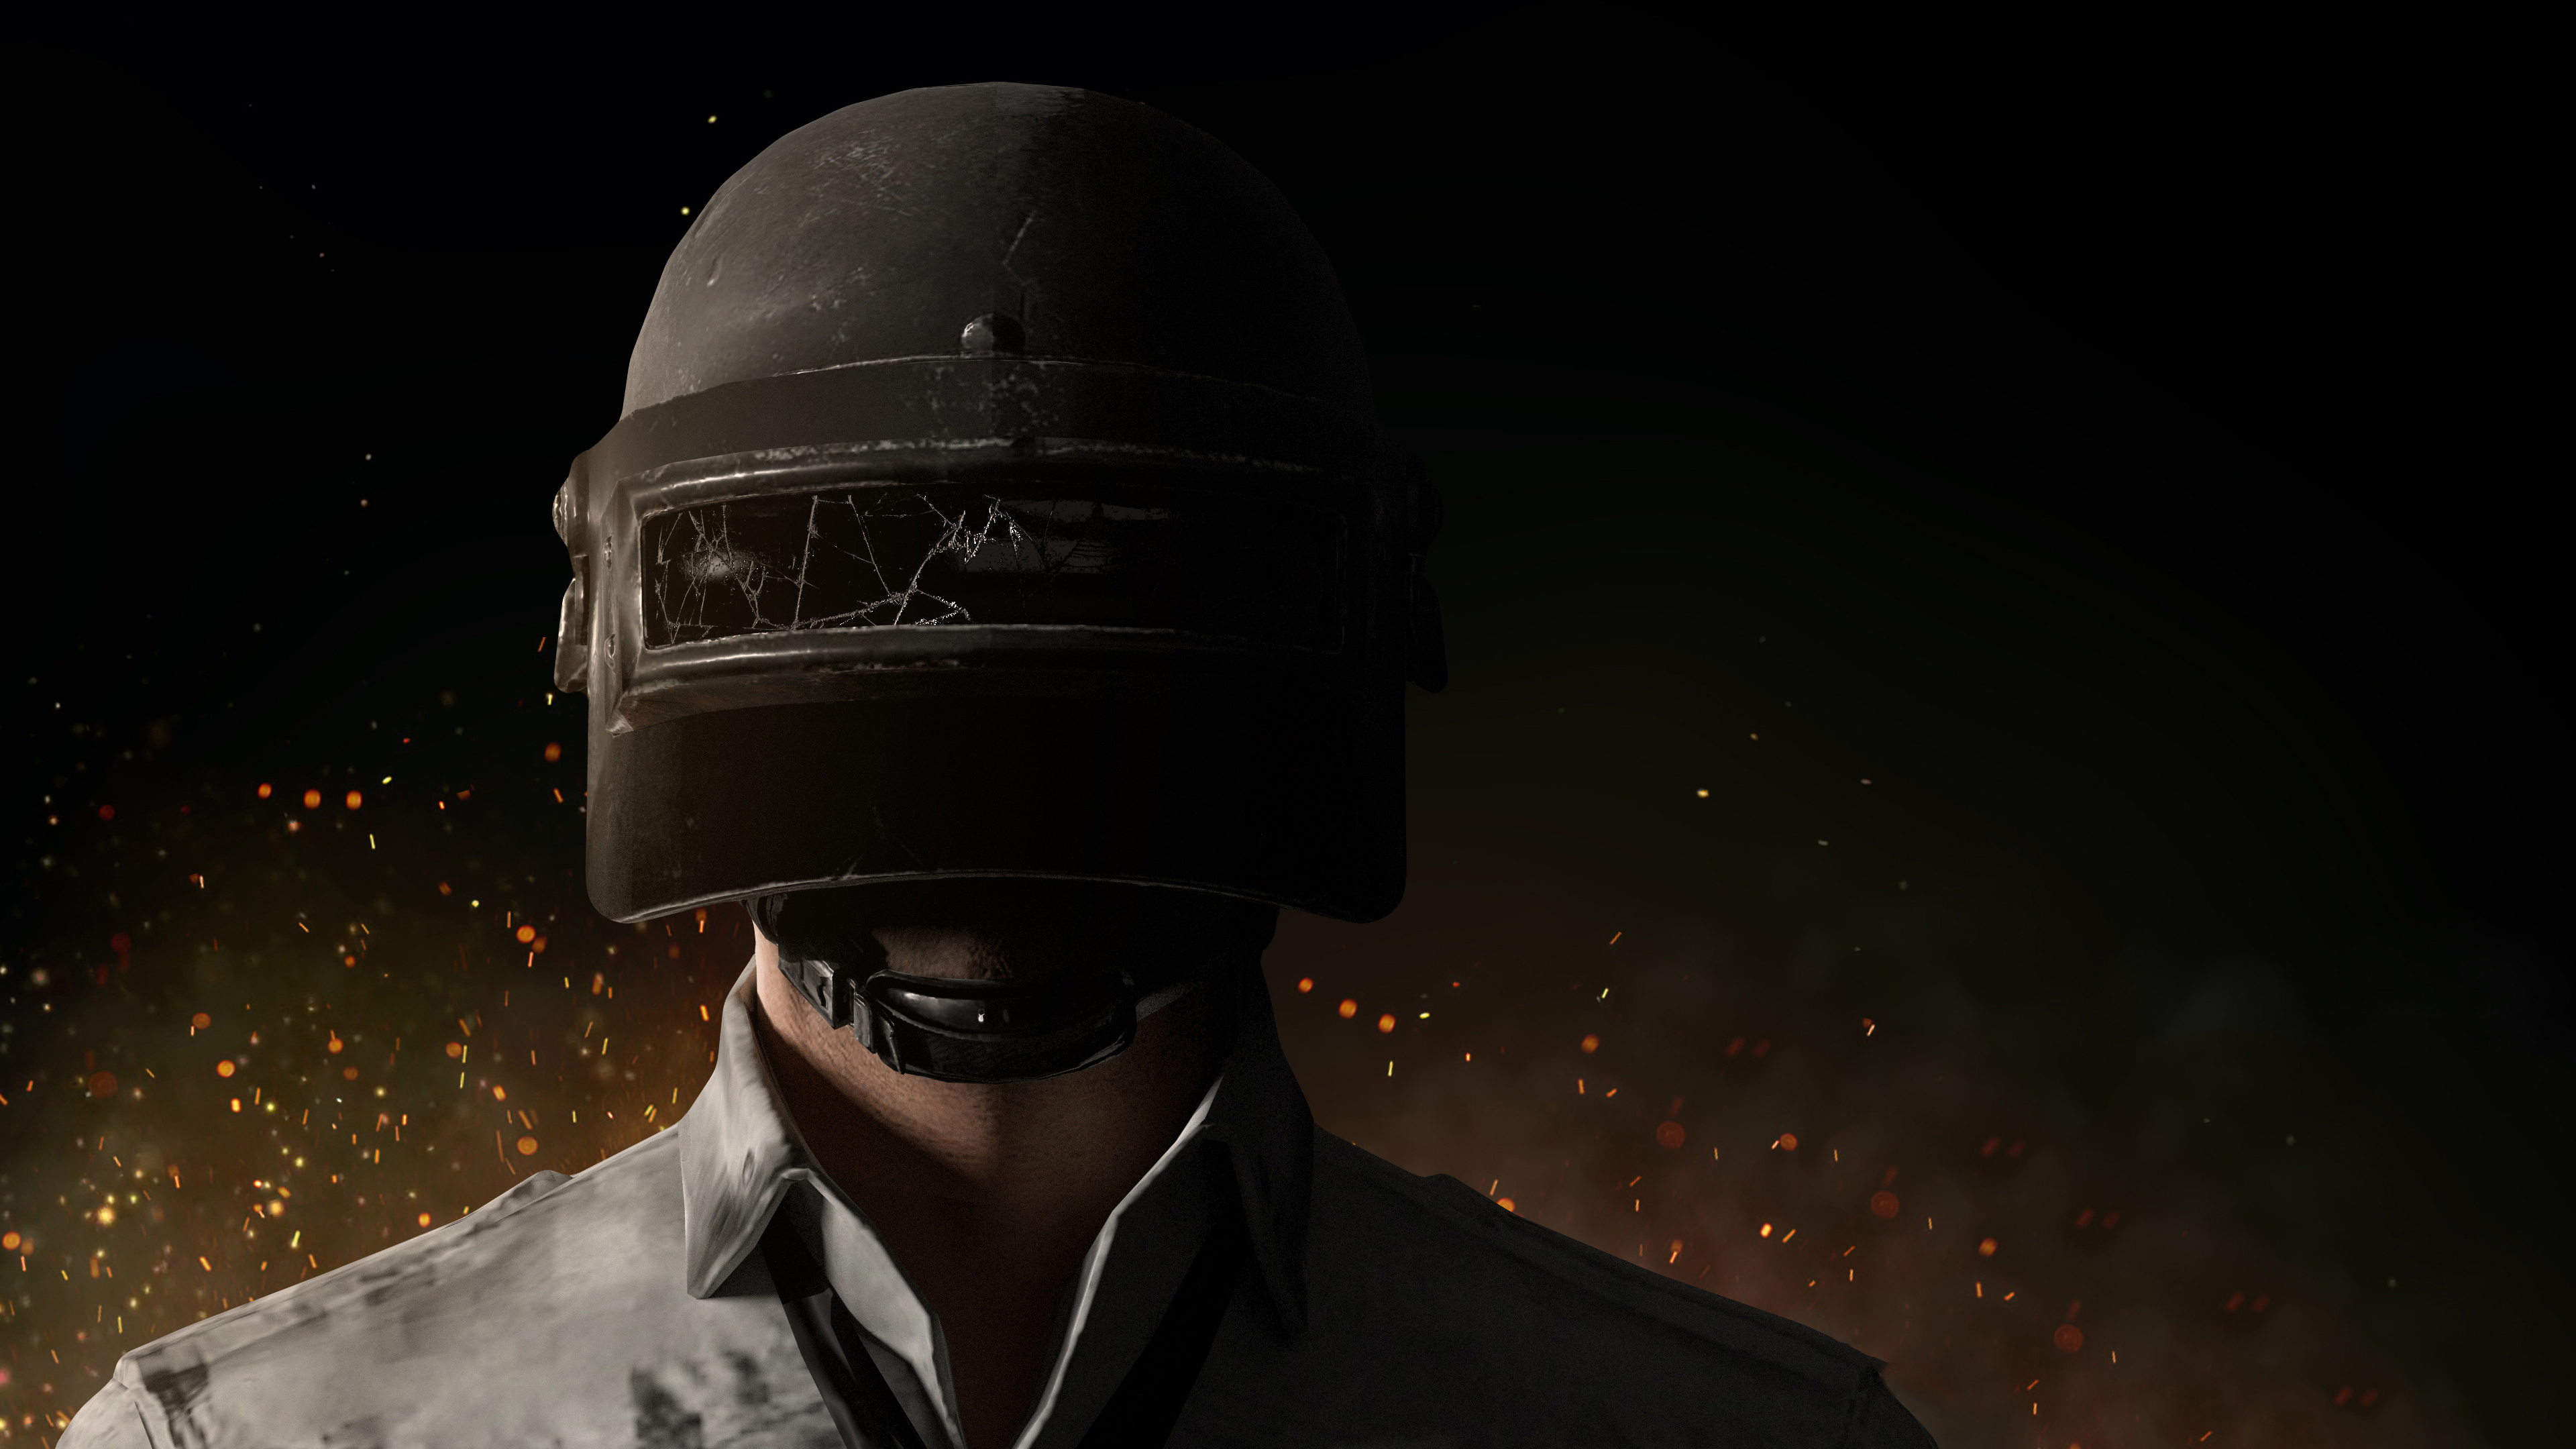 Pubg Wallpaper Dual Monitor: Player Unknown's Battlegrounds (PUBG) 4K Helmetguy Pubg